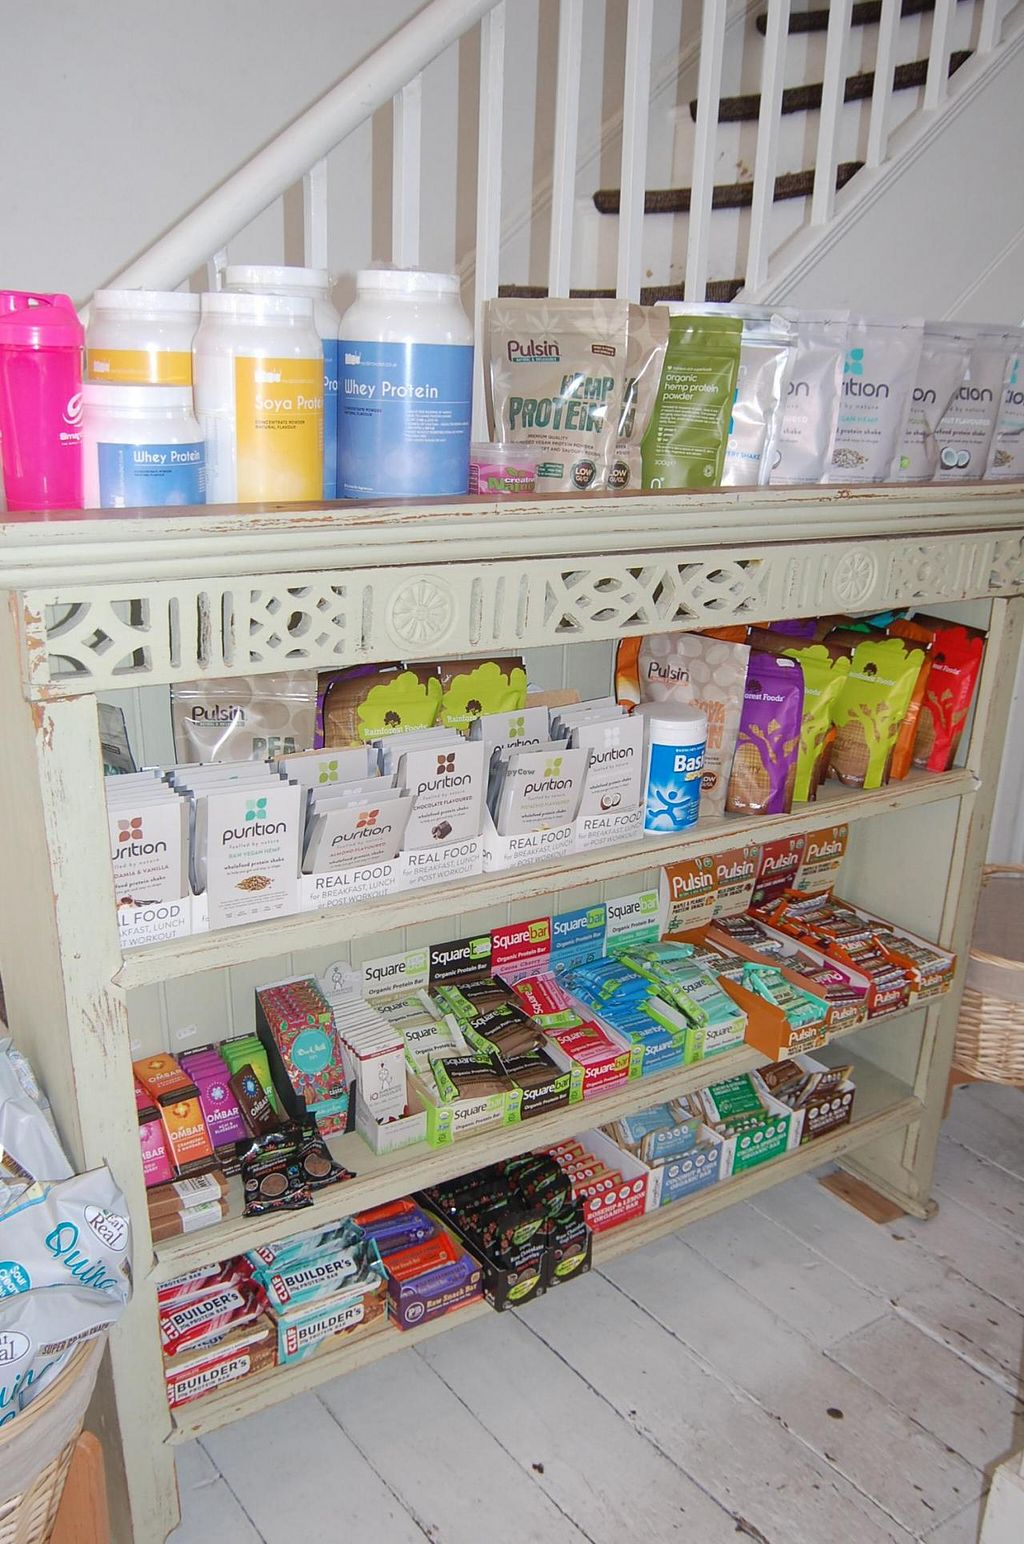 """Photo of Spa Juice Bar - Greenwich  by <a href=""""/members/profile/Clare"""">Clare</a> <br/>Protein Bars and powders <br/> June 18, 2015  - <a href='/contact/abuse/image/52958/106415'>Report</a>"""